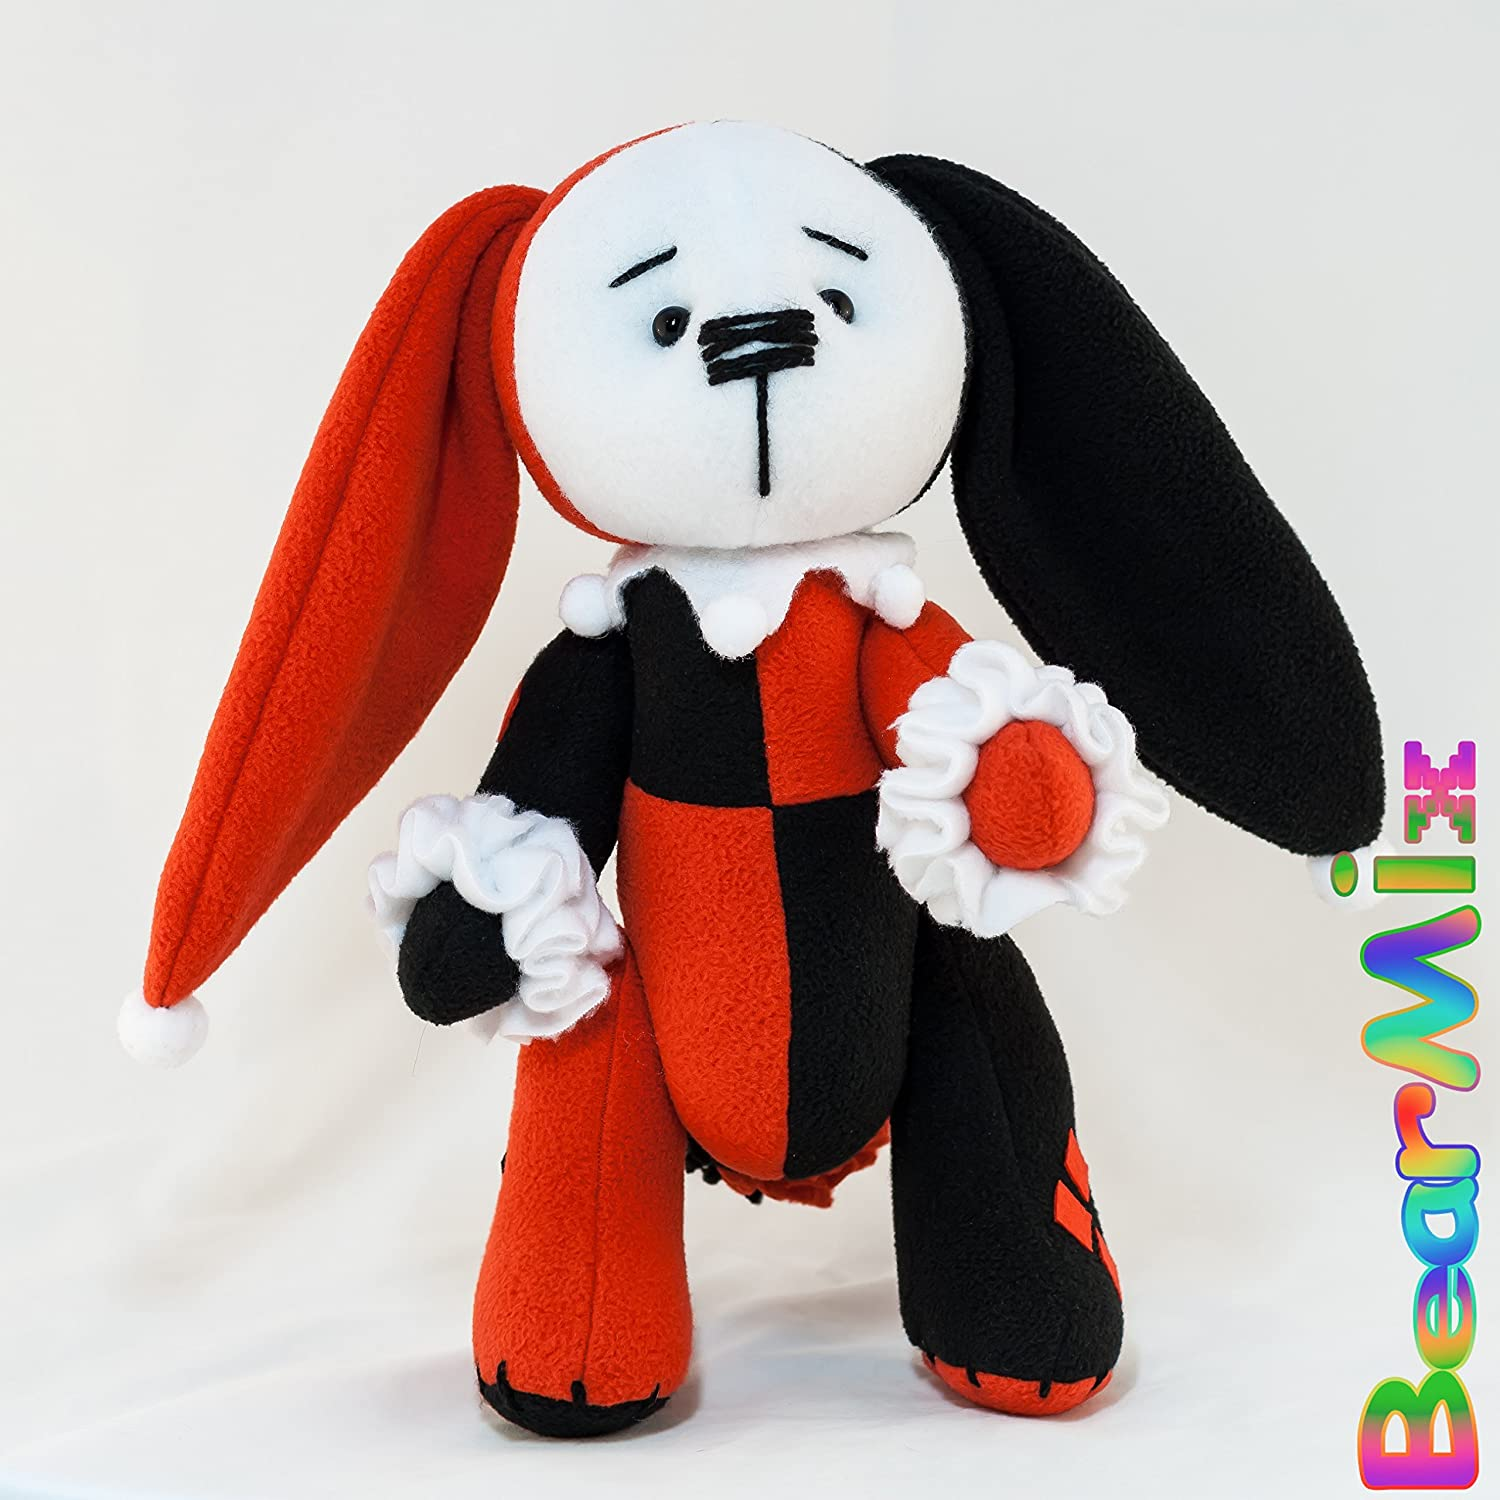 Harley Quinn bunny - dc anti hero movie comic plush toy Injustice League Batman